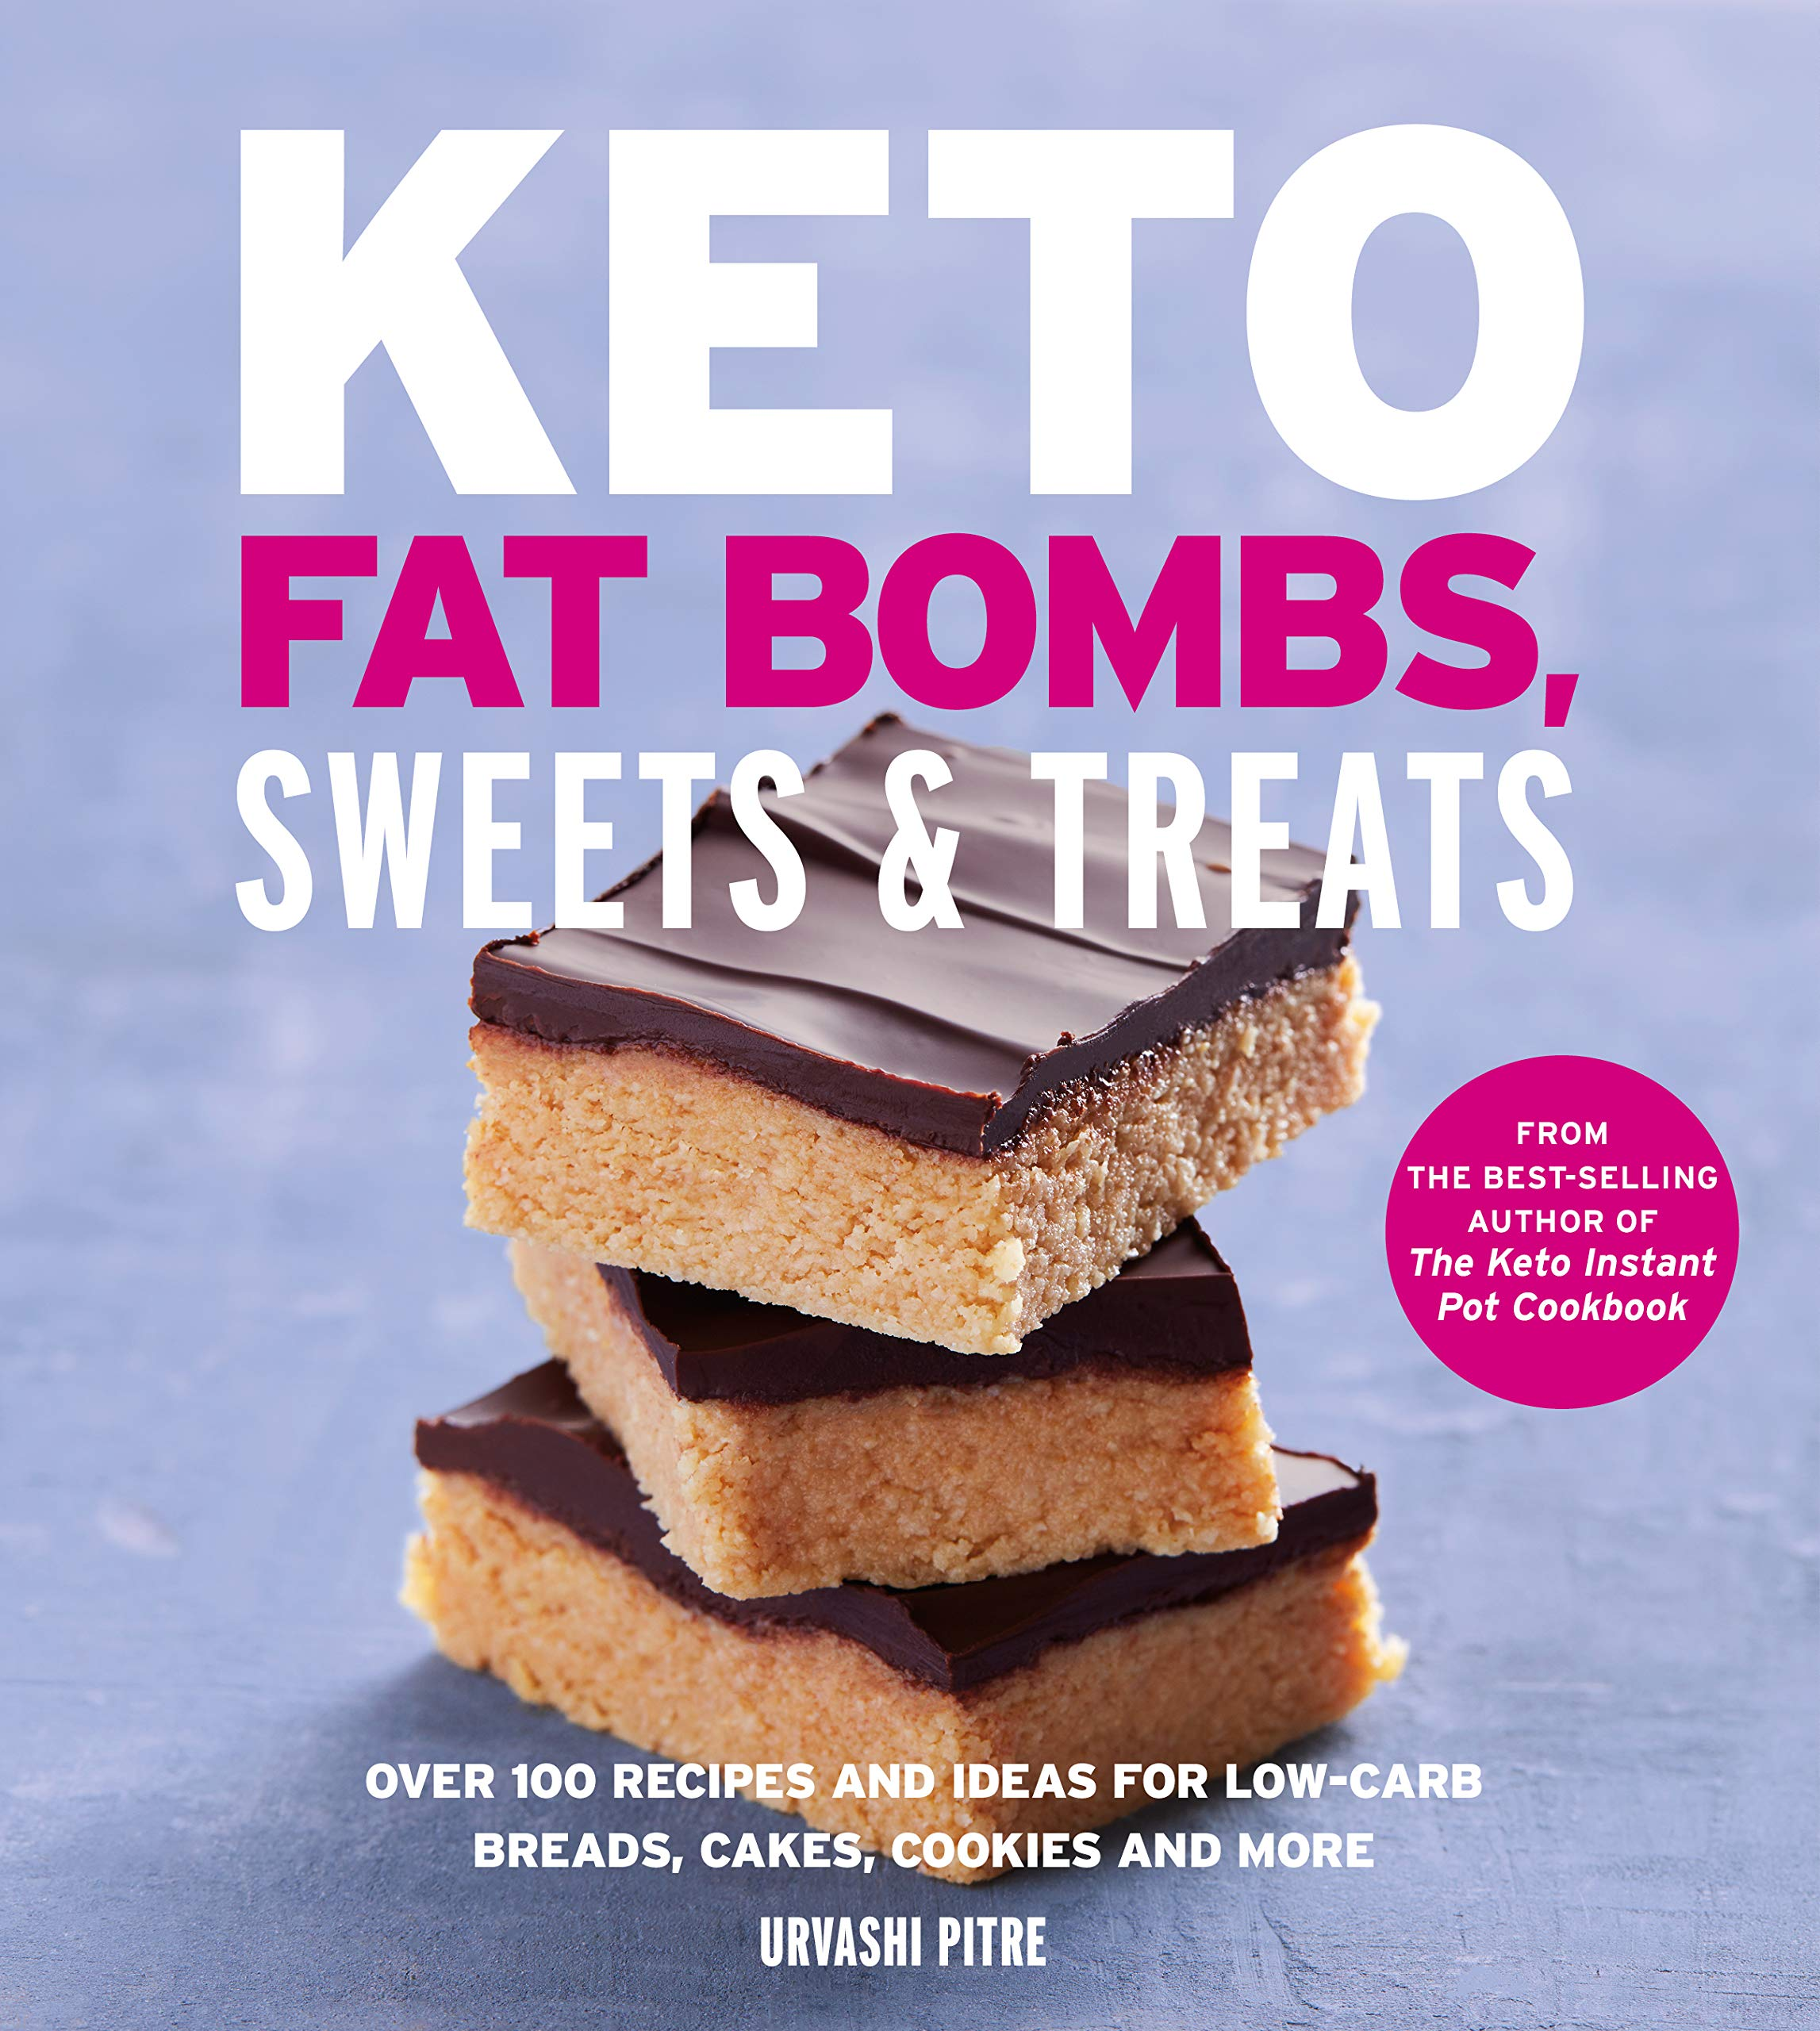 Keto-Friendly Dessert Recipes Deals Now